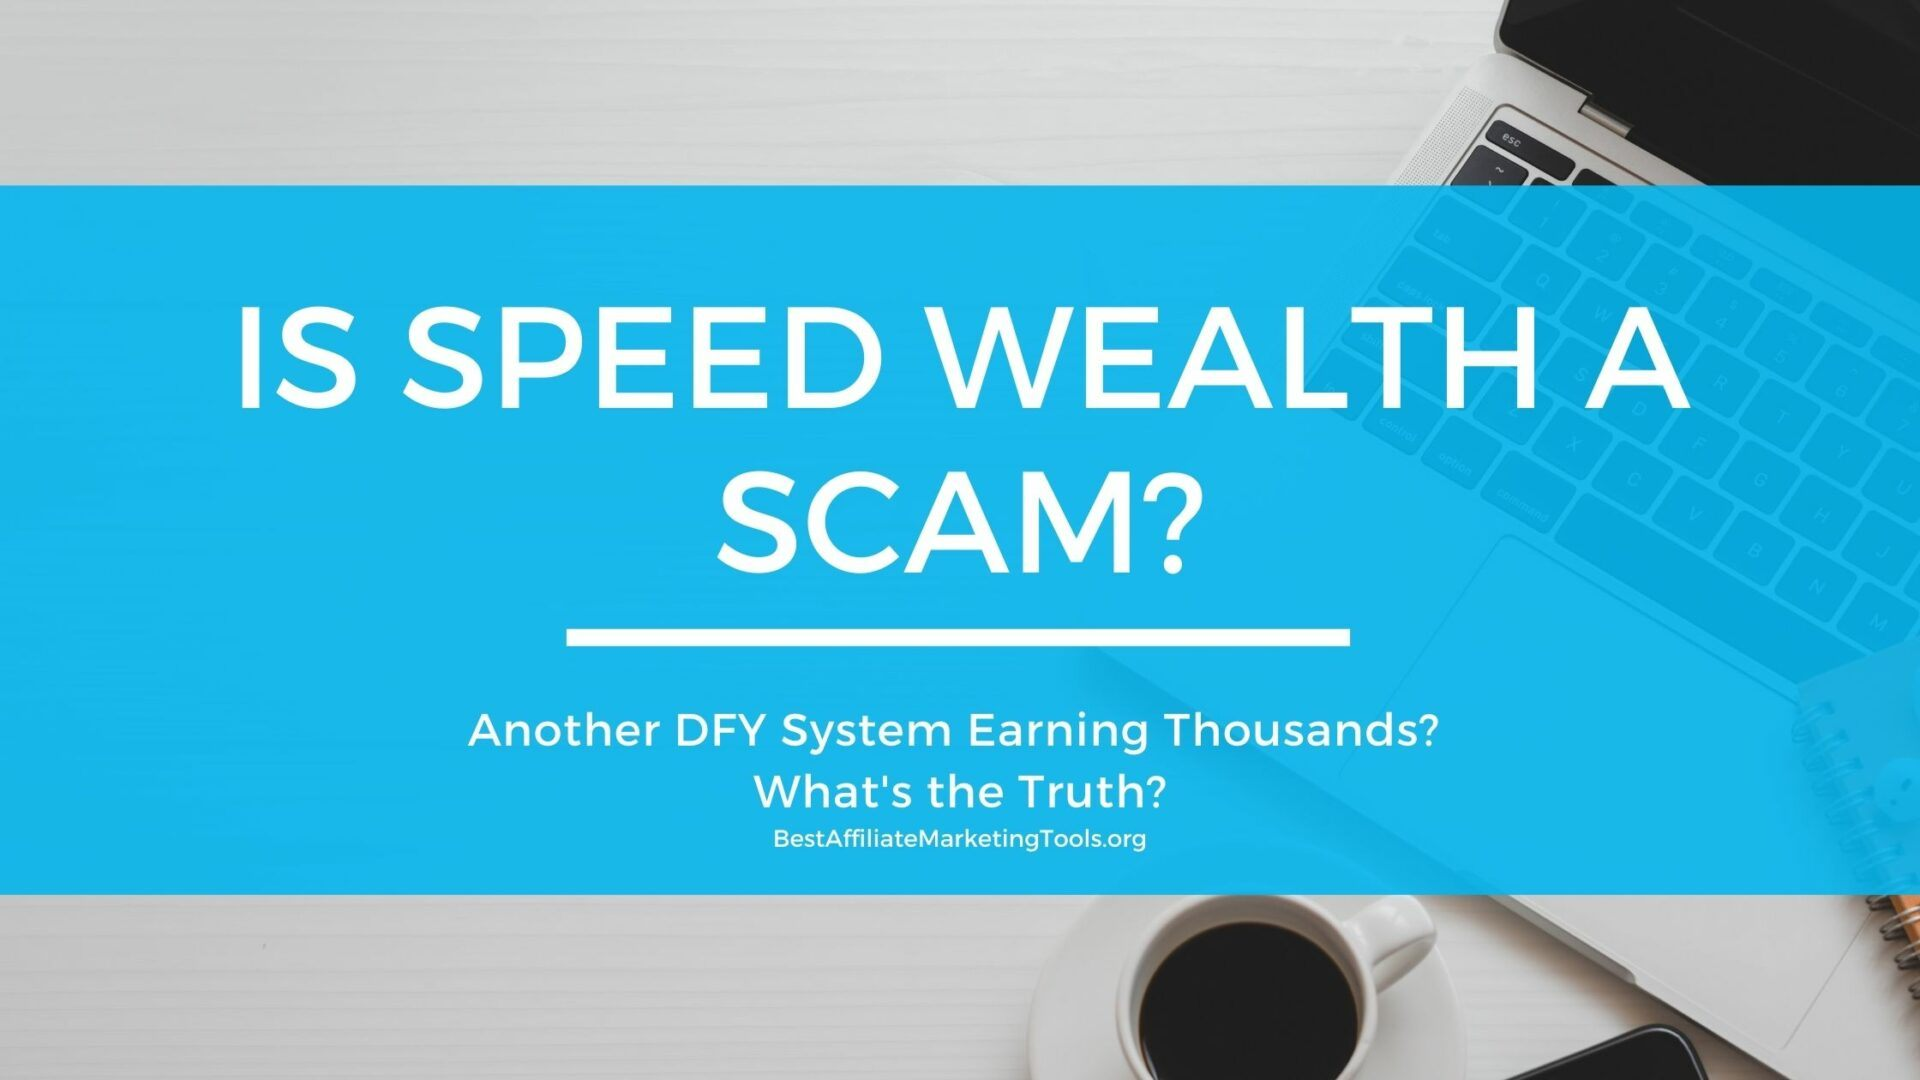 Is Speed Wealth A Scam